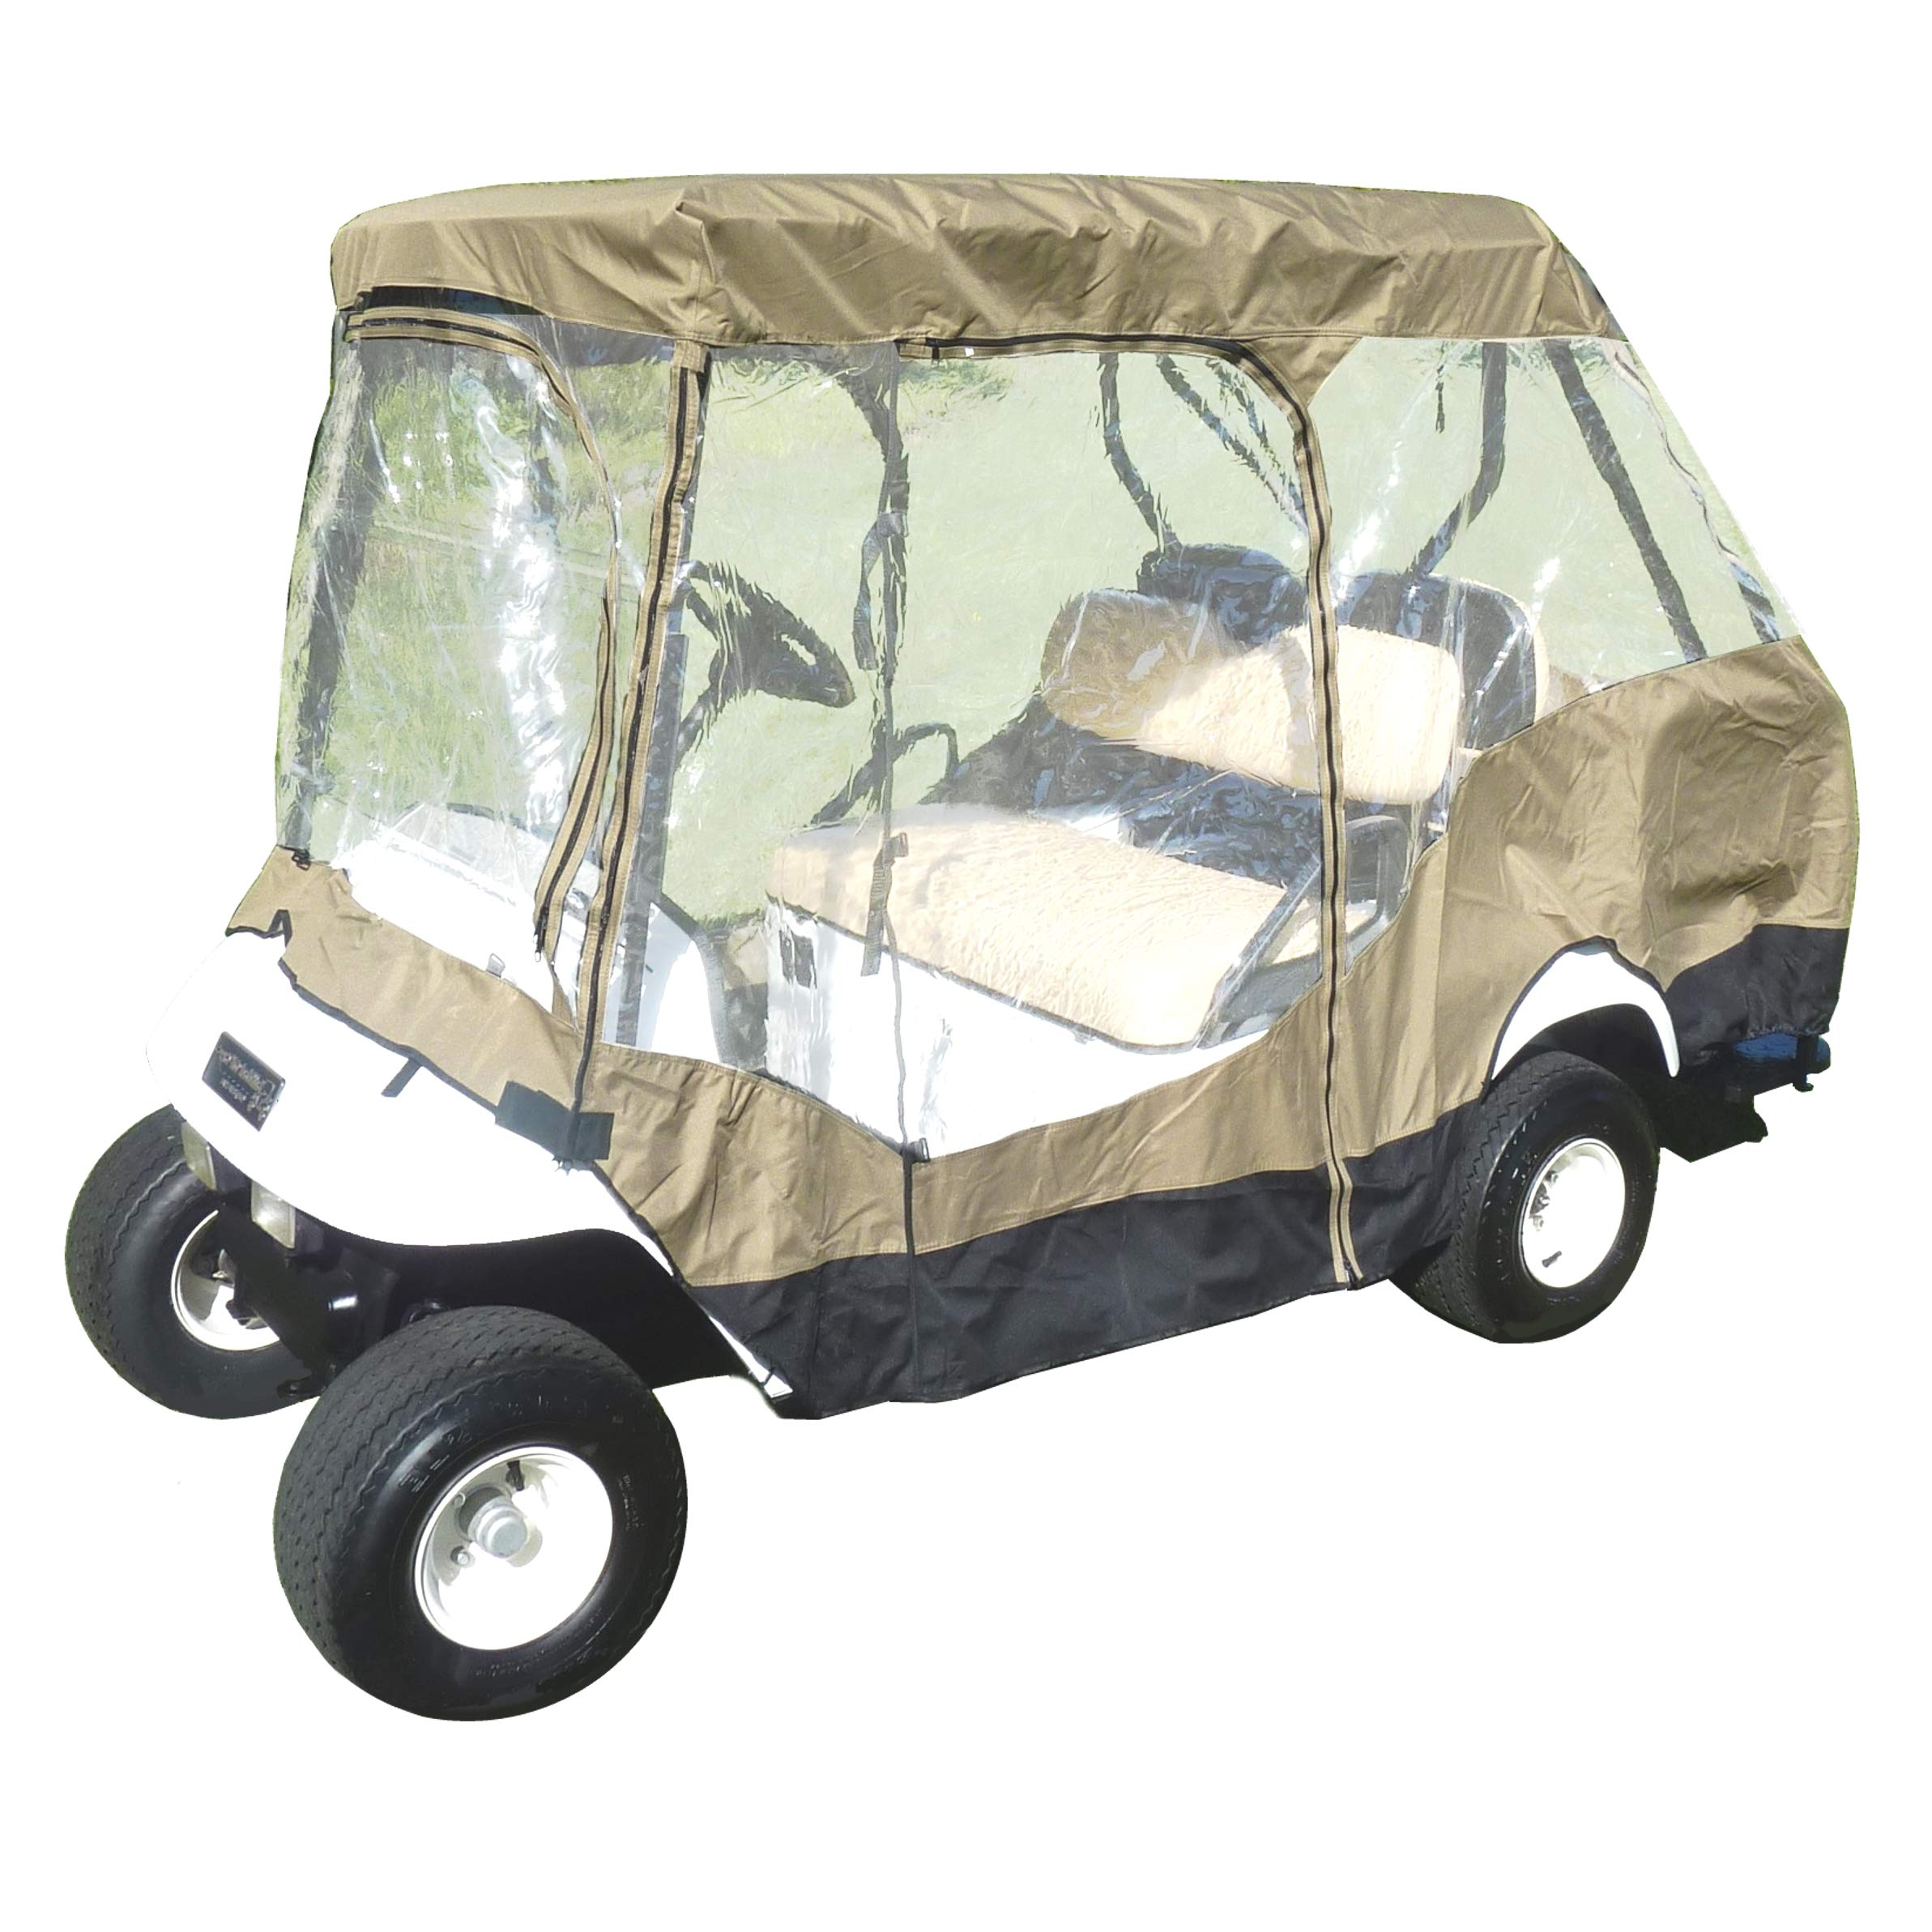 Formosa Covers Premium Tight Weave Golf Cart Driving Enclosure for 4 seater with 2 seater roof up to 58''